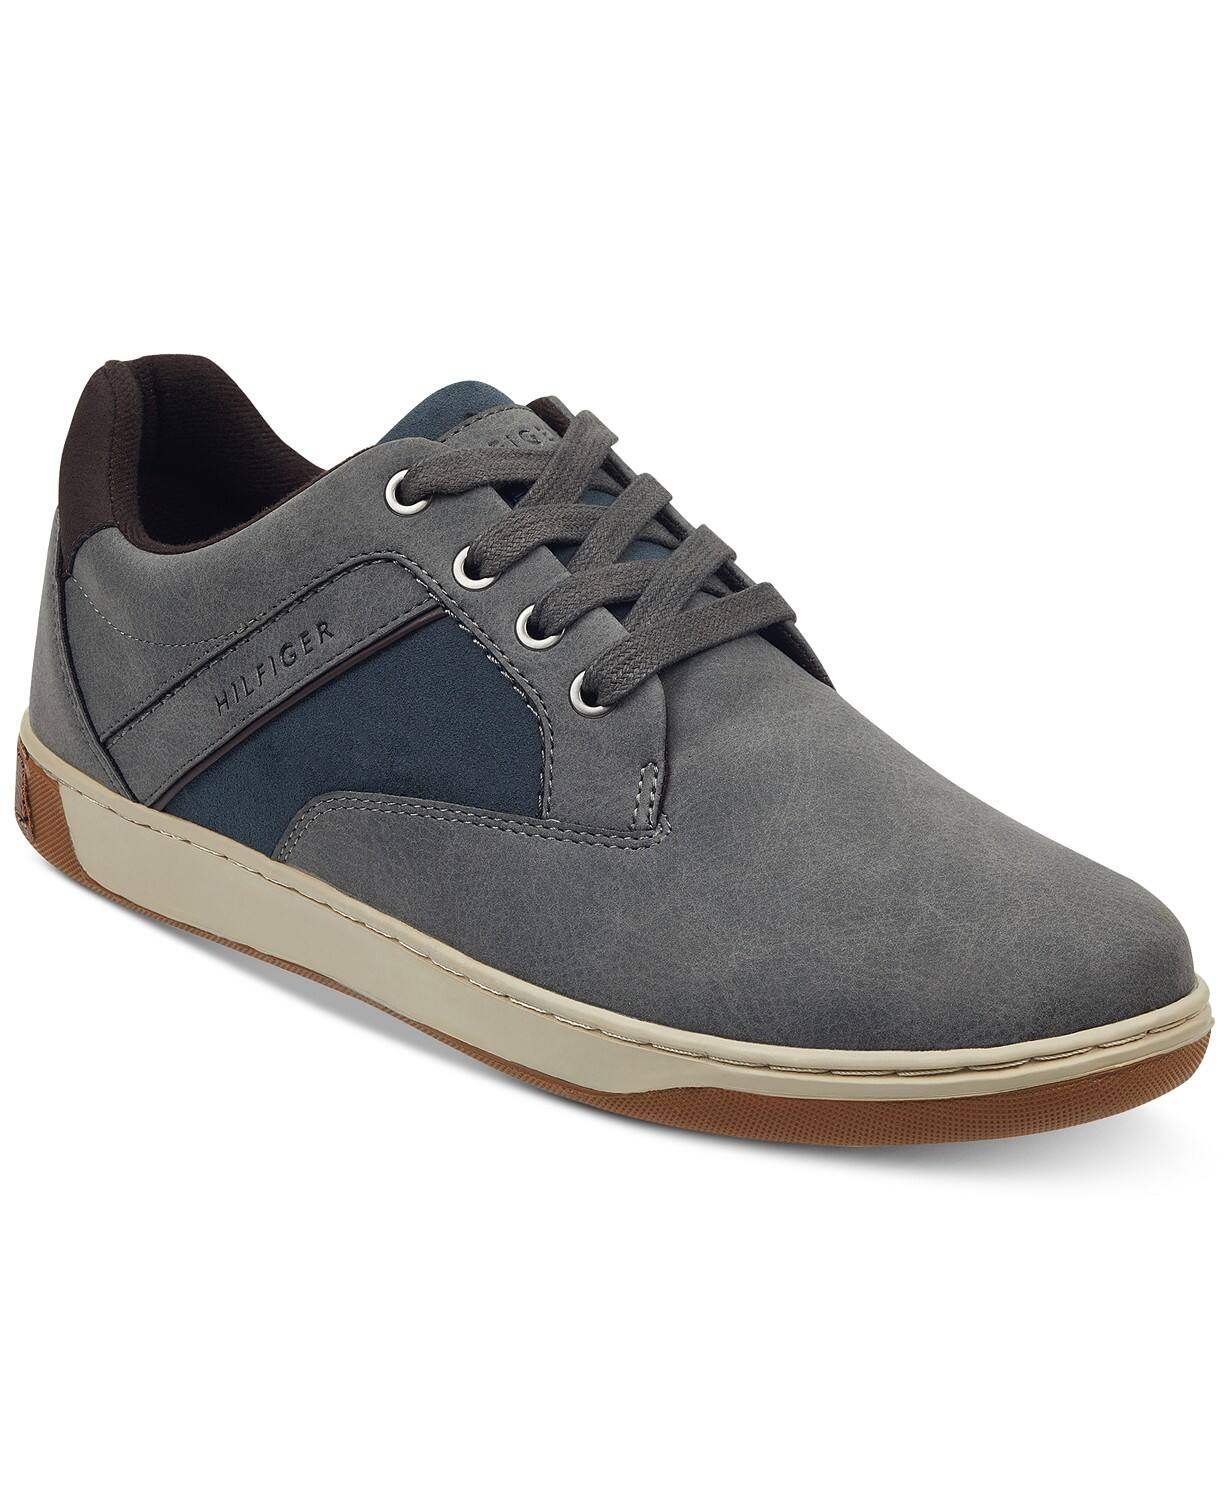 0e448502b18 Macy's: Men's Tommy Hilfiger Sneakers (Various Styles) $32, Clarks ...